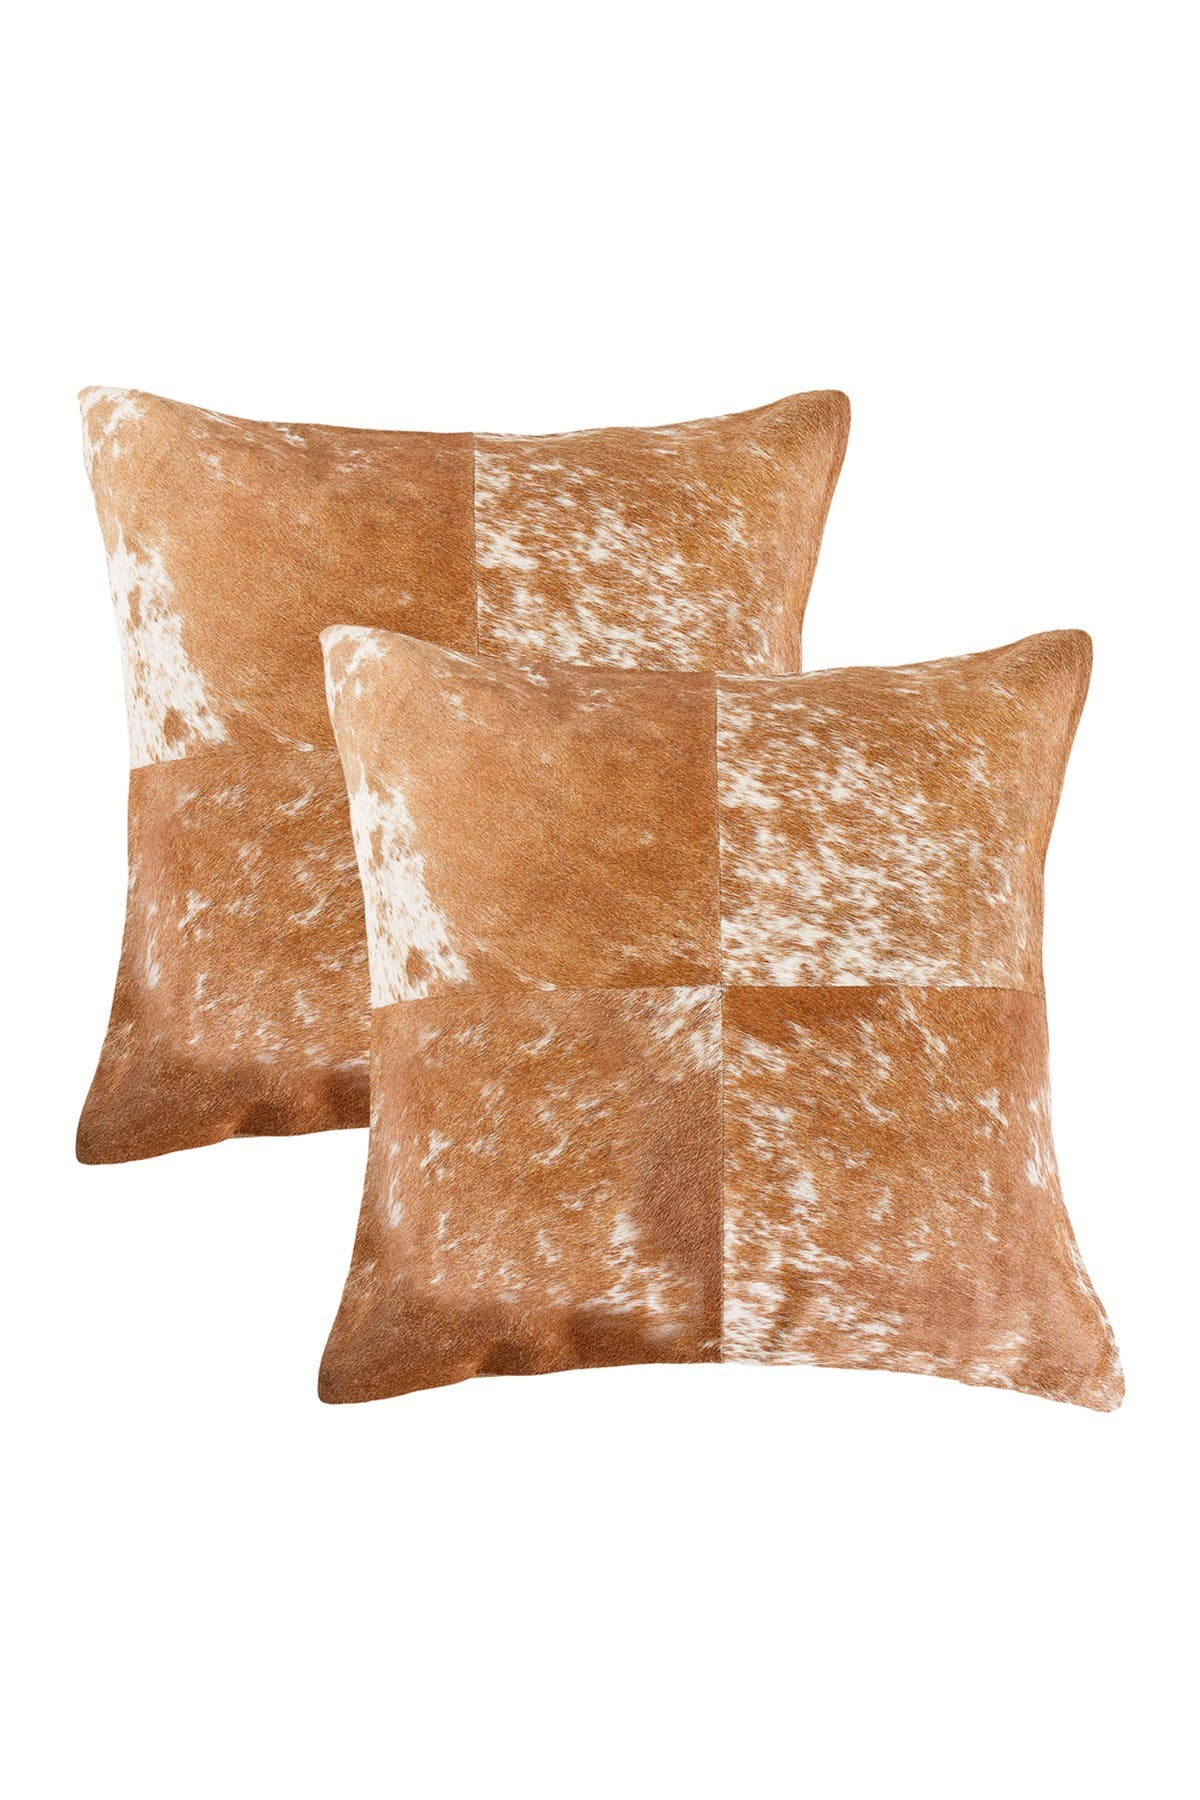 """Image of Natural Torino Quattro Pillow 18"""" X 18"""" - S&P Brown/White - Pack of 2"""